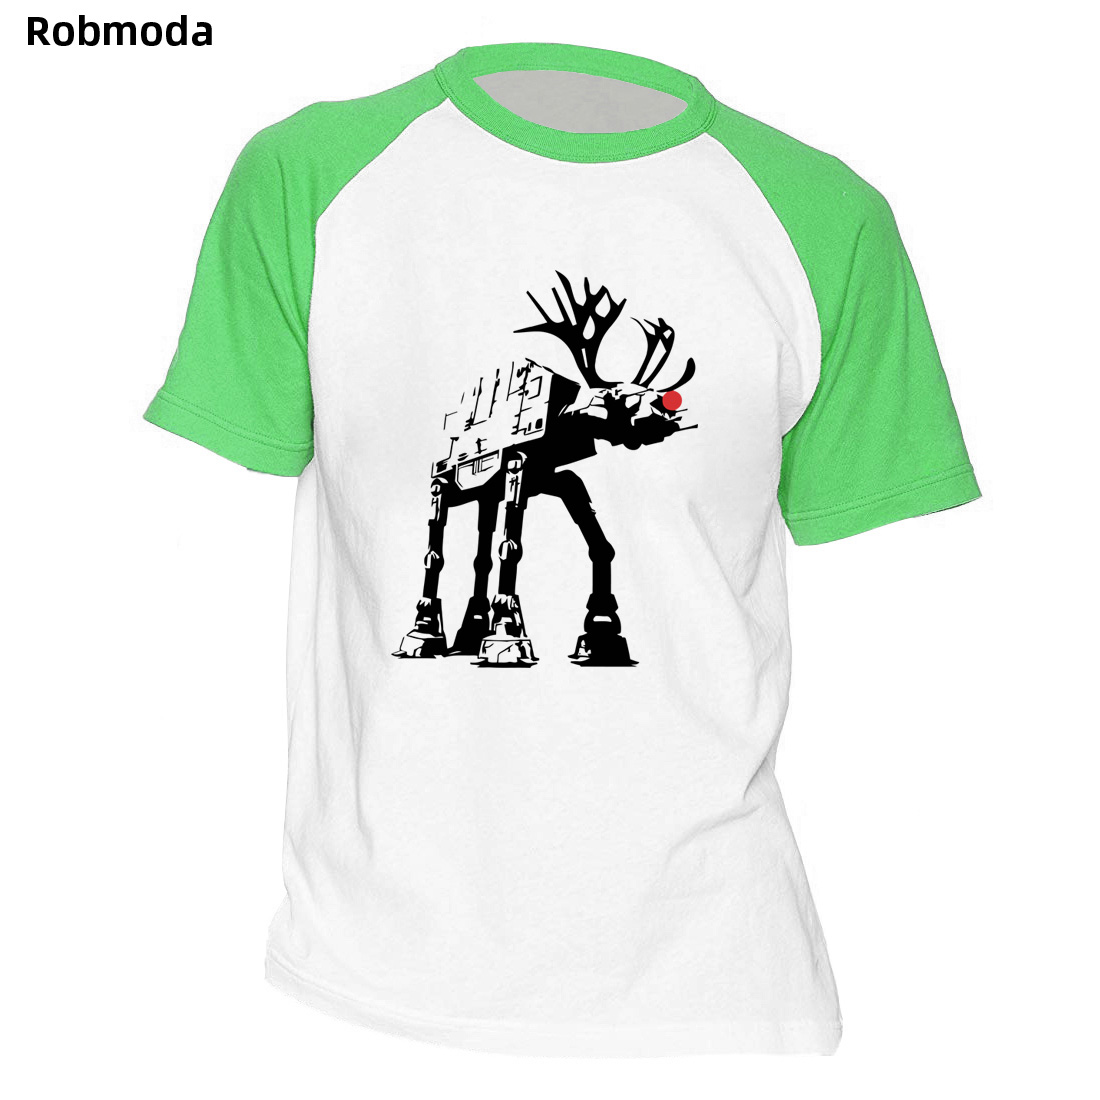 2019 brand High quality short sleeve summer men tshirt comfortable breathable black t shirt male fashion cotton t shirt elk in T Shirts from Men 39 s Clothing